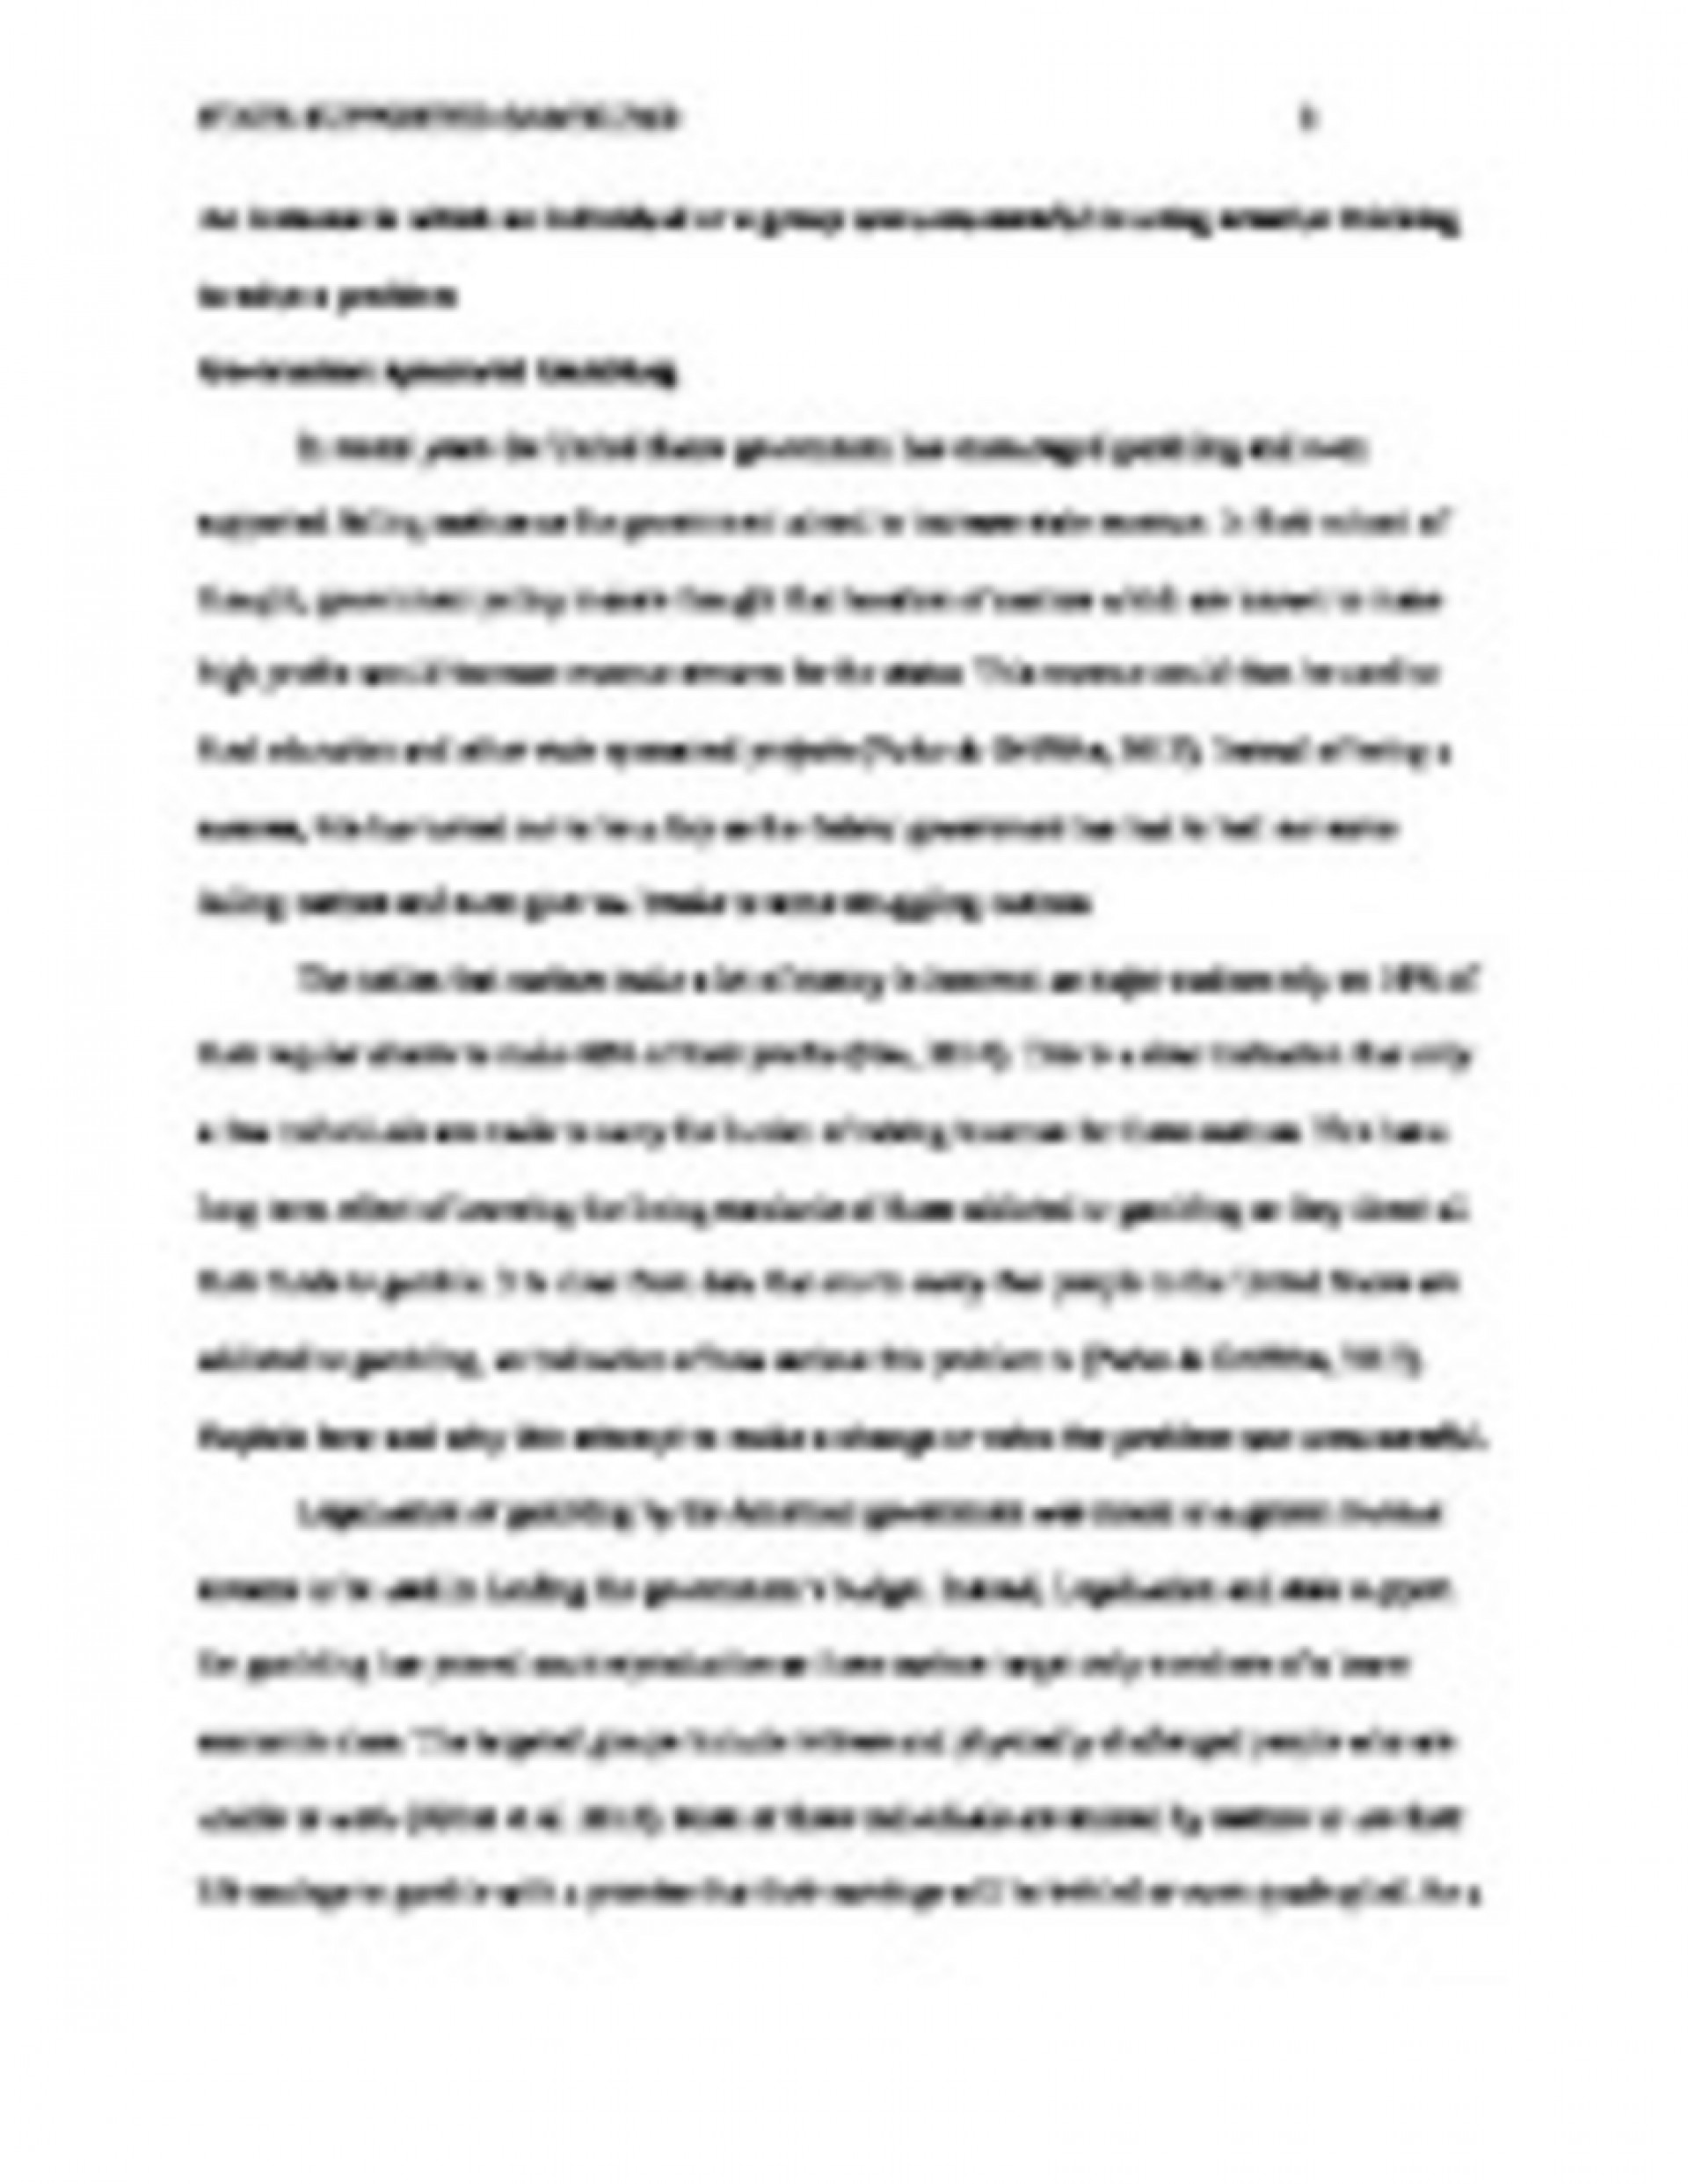 015 State Supported Gamblingpage1 Word Essay Unforgettable 700 How Many Pages On Save Fuel Format 1920